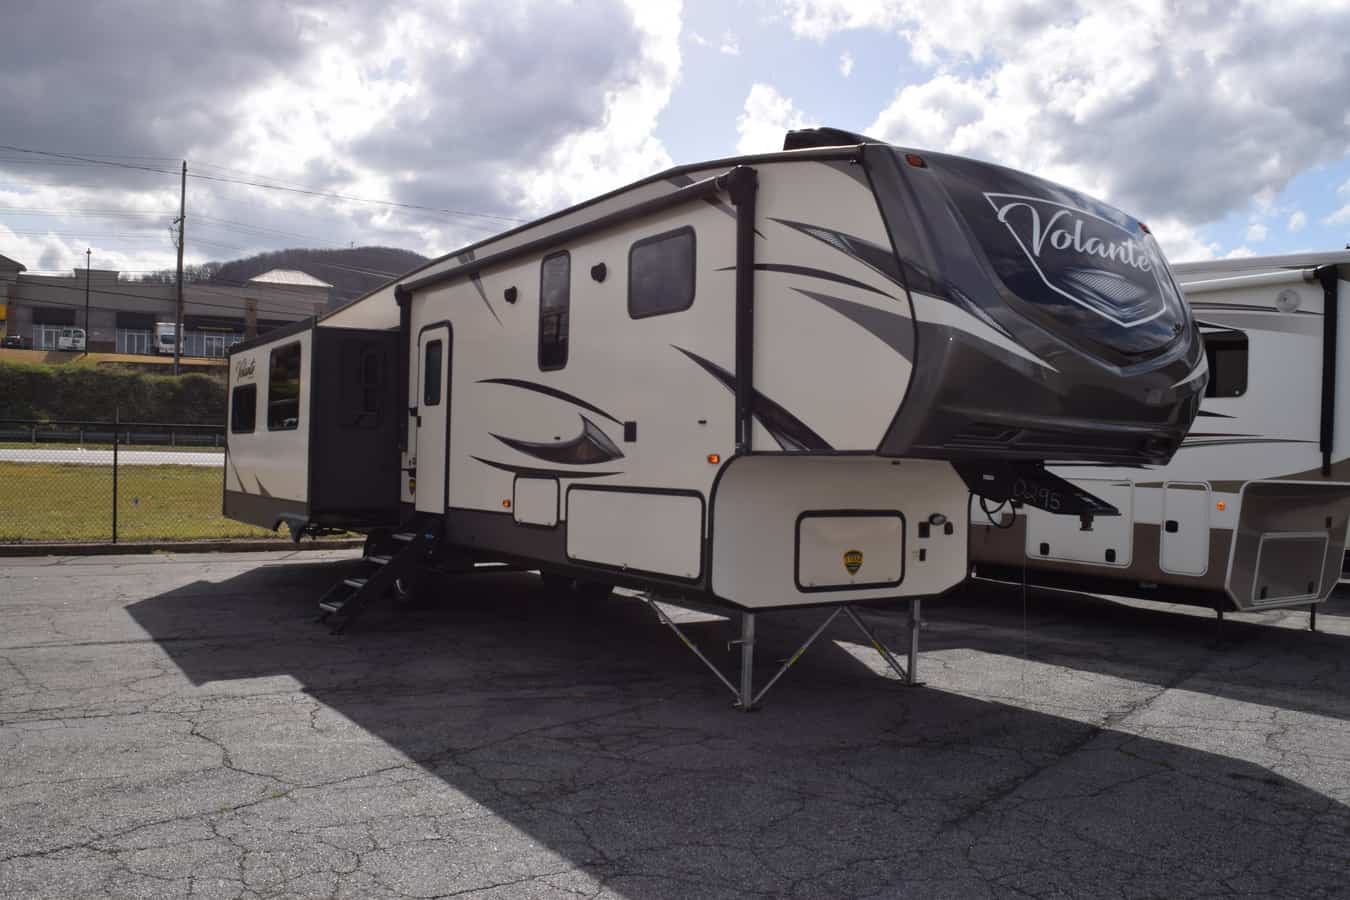 USED 2019 Crossroads VOLANTE 365MD - Three Way Campers